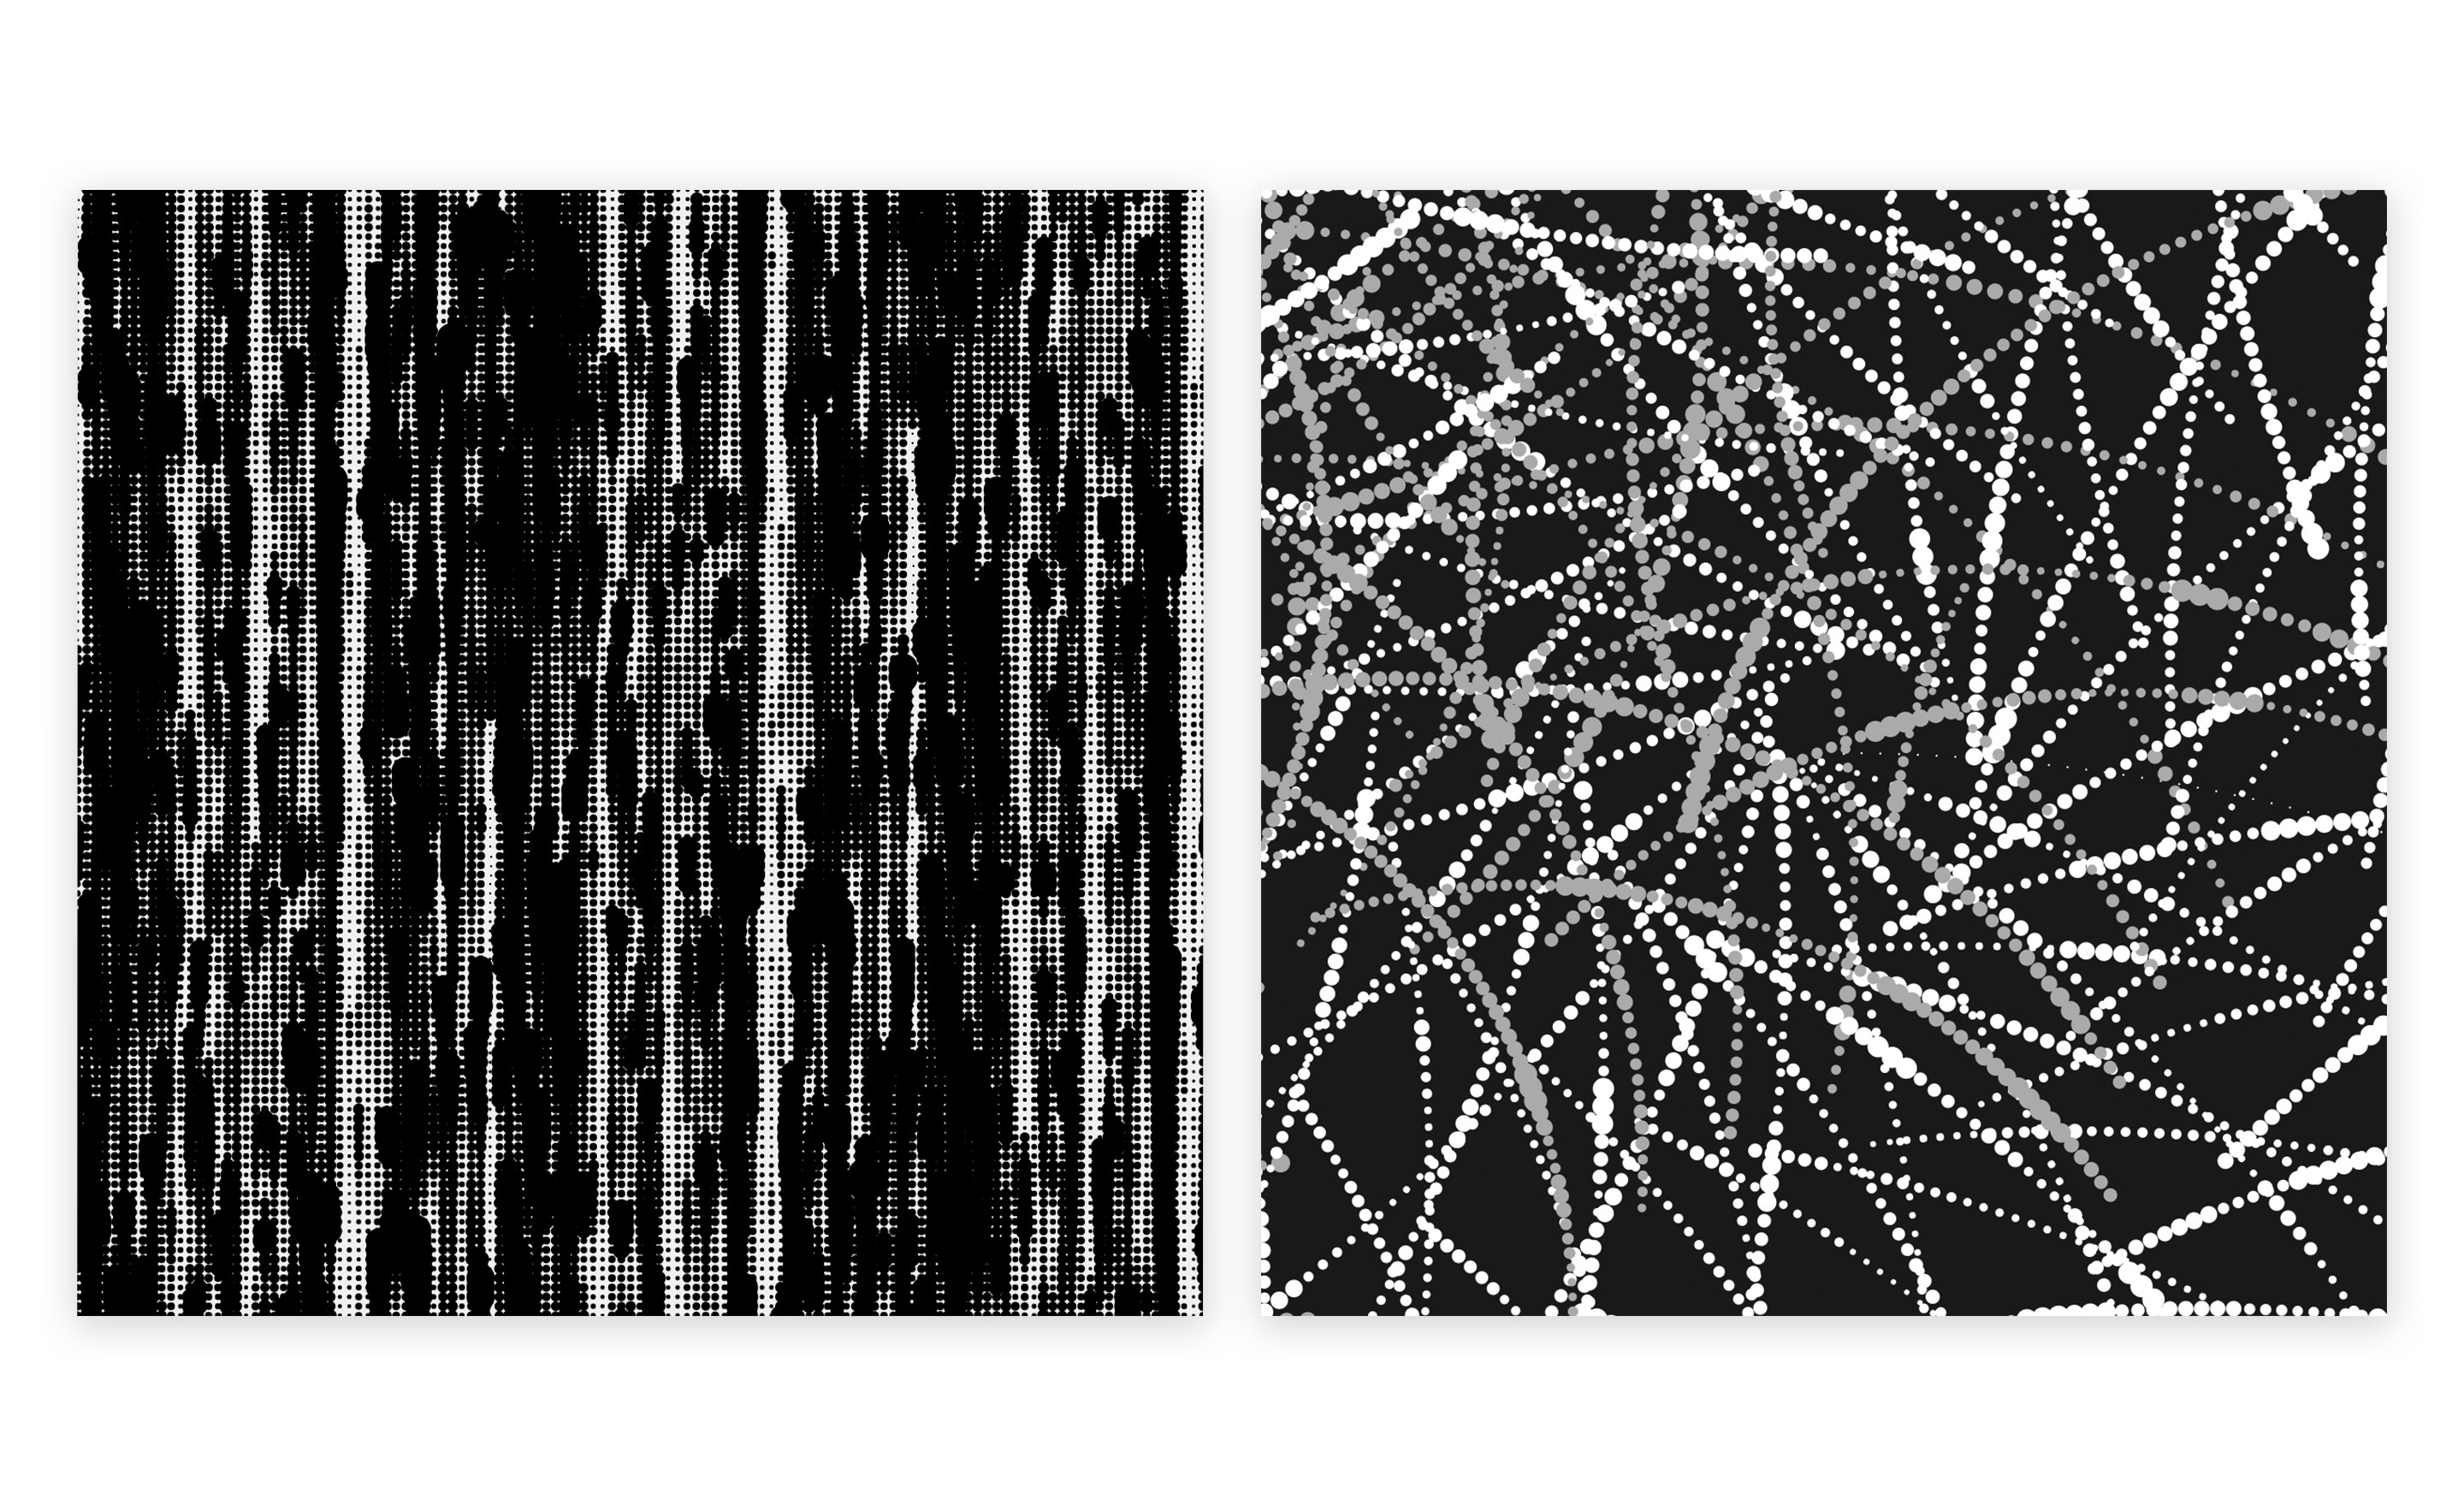 The left image is a series of circles varying in size moving vertically across the canvas. The right image is a series of layered spiraling circle patterns that are varying in size.